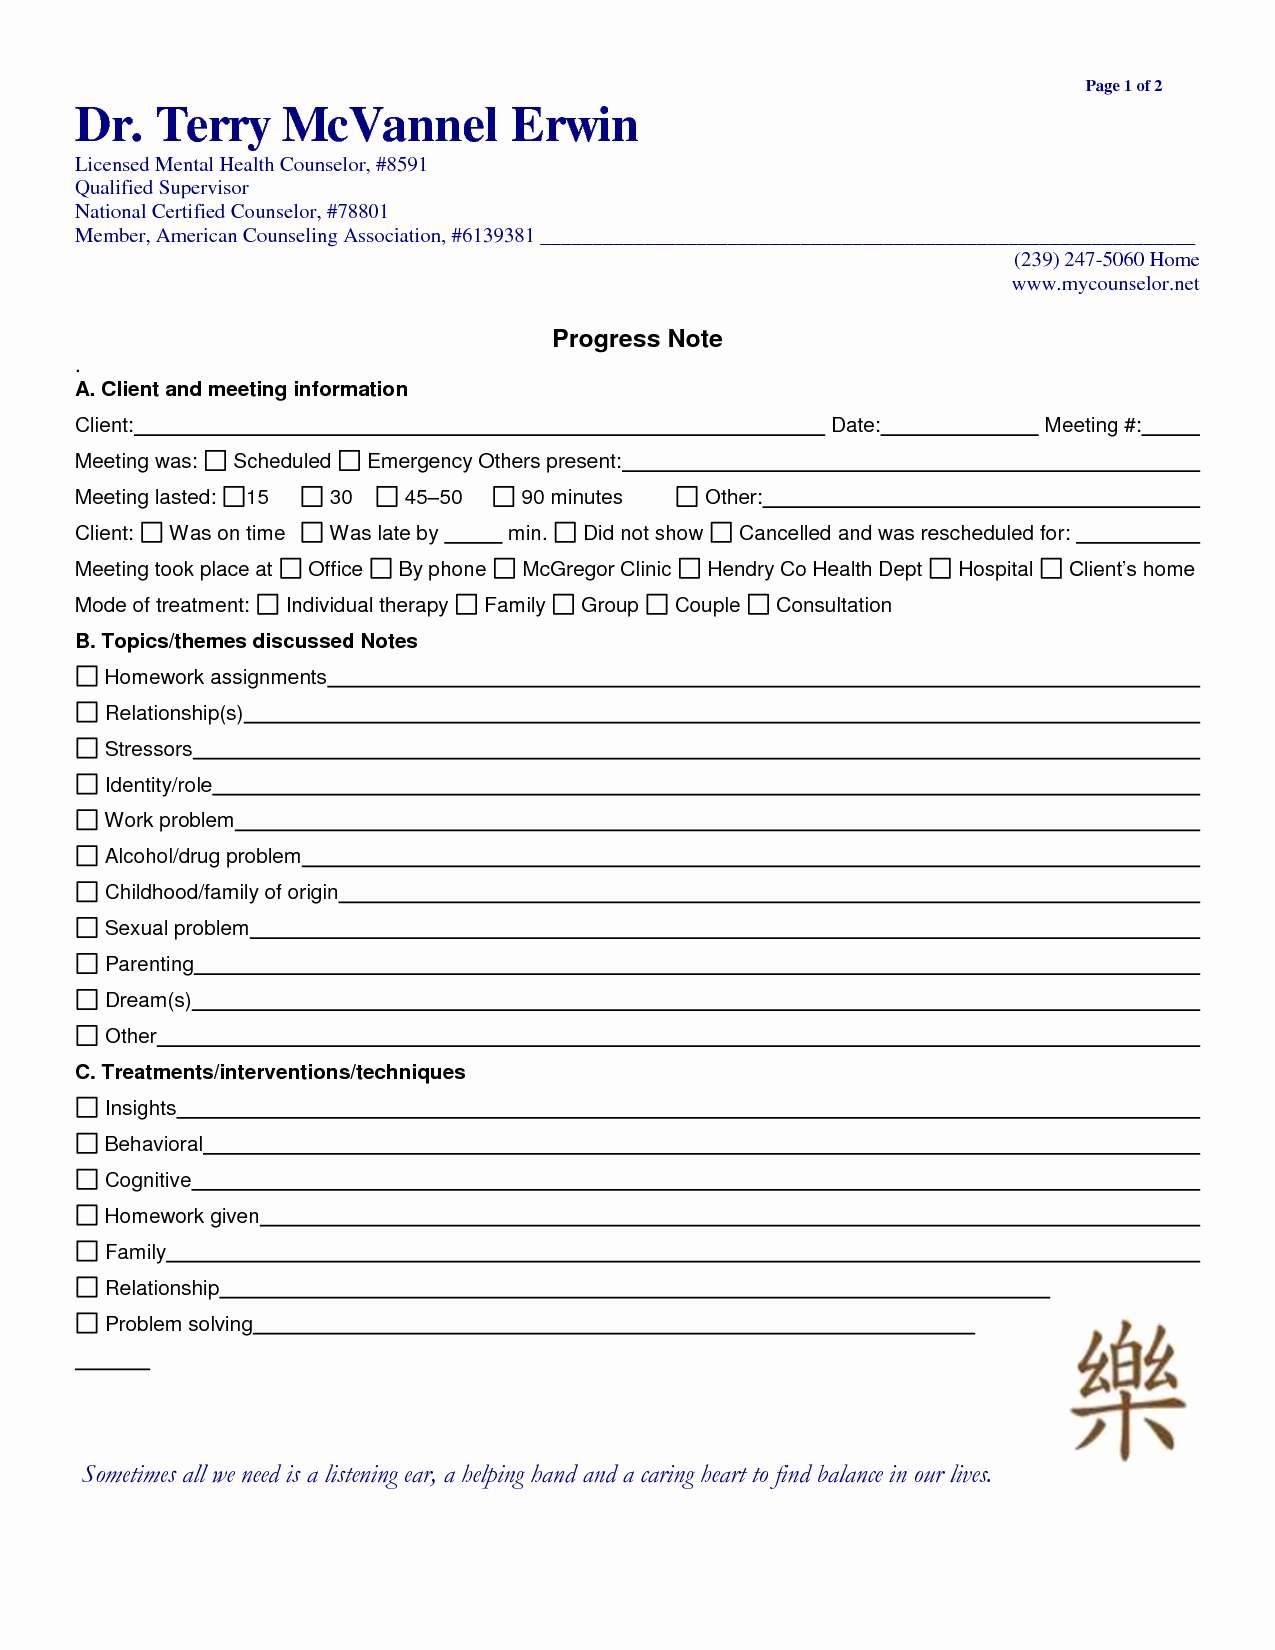 Medical Progress Note Template New 9 Best Of Medical Progress Notes forms Medical